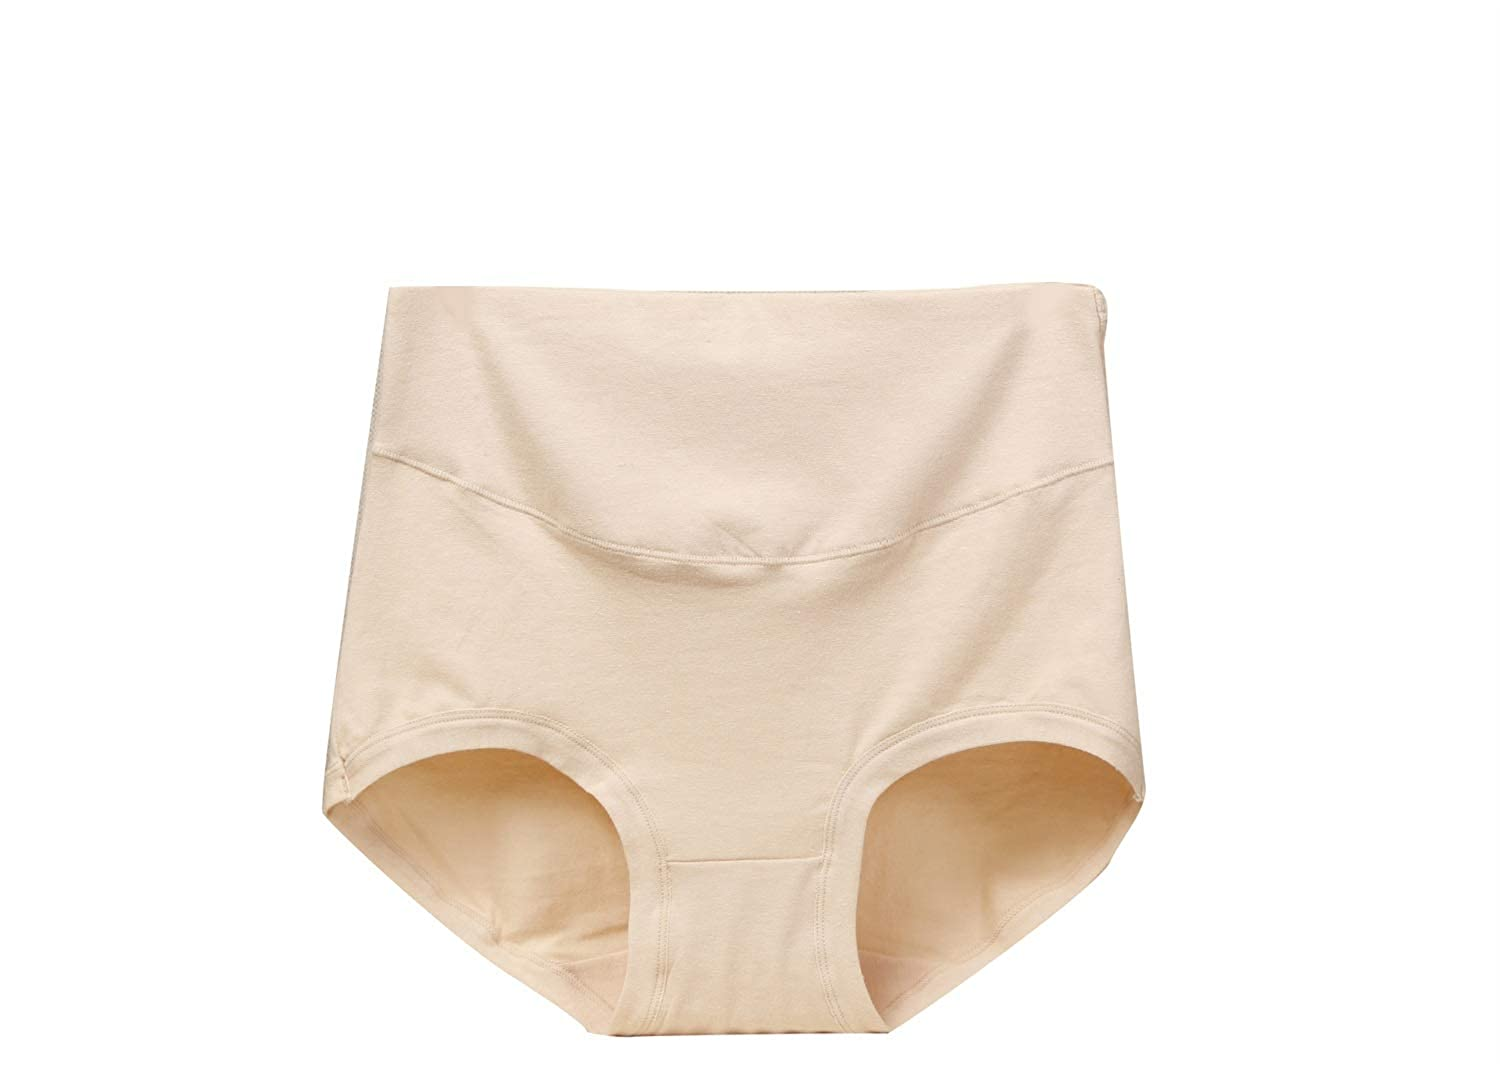 a53707ed784d XiuG 6 Piece Set Women's Large Size High Waist Breathable Seamless Lift Hip  Cotton Panties Sleeping Wear (Color : Apricot, Size : L): Amazon.in:  Clothing & ...